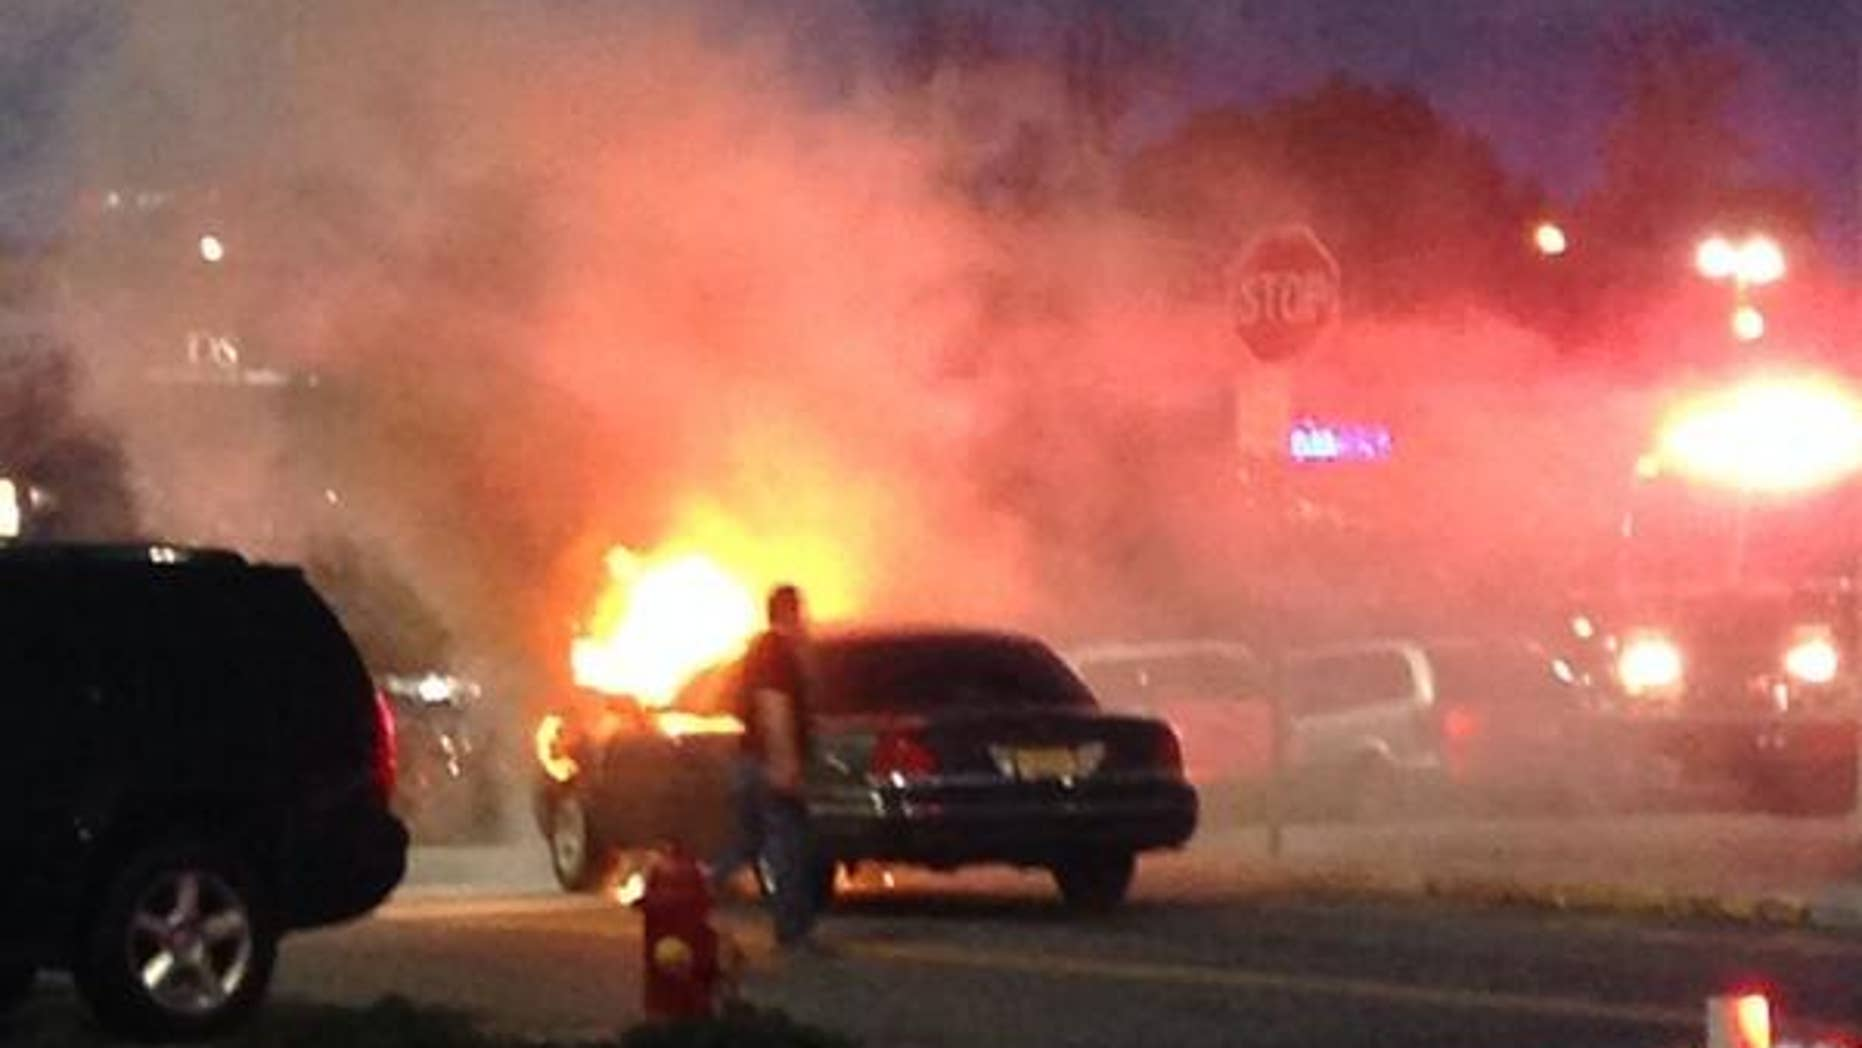 This photo provided by Brittany Berdy shows a car fire that authorities believe may have led to reports of gunshots that forced them to evacuate the Garden State Plaza mall in Paramus, N.J., Saturday, May 10, 2014. New Jersey State Police Capt. Stephen Jones said that police have found no evidence that any shots were fired at the mall Saturday night. (AP Photo/Brittany Berdy)